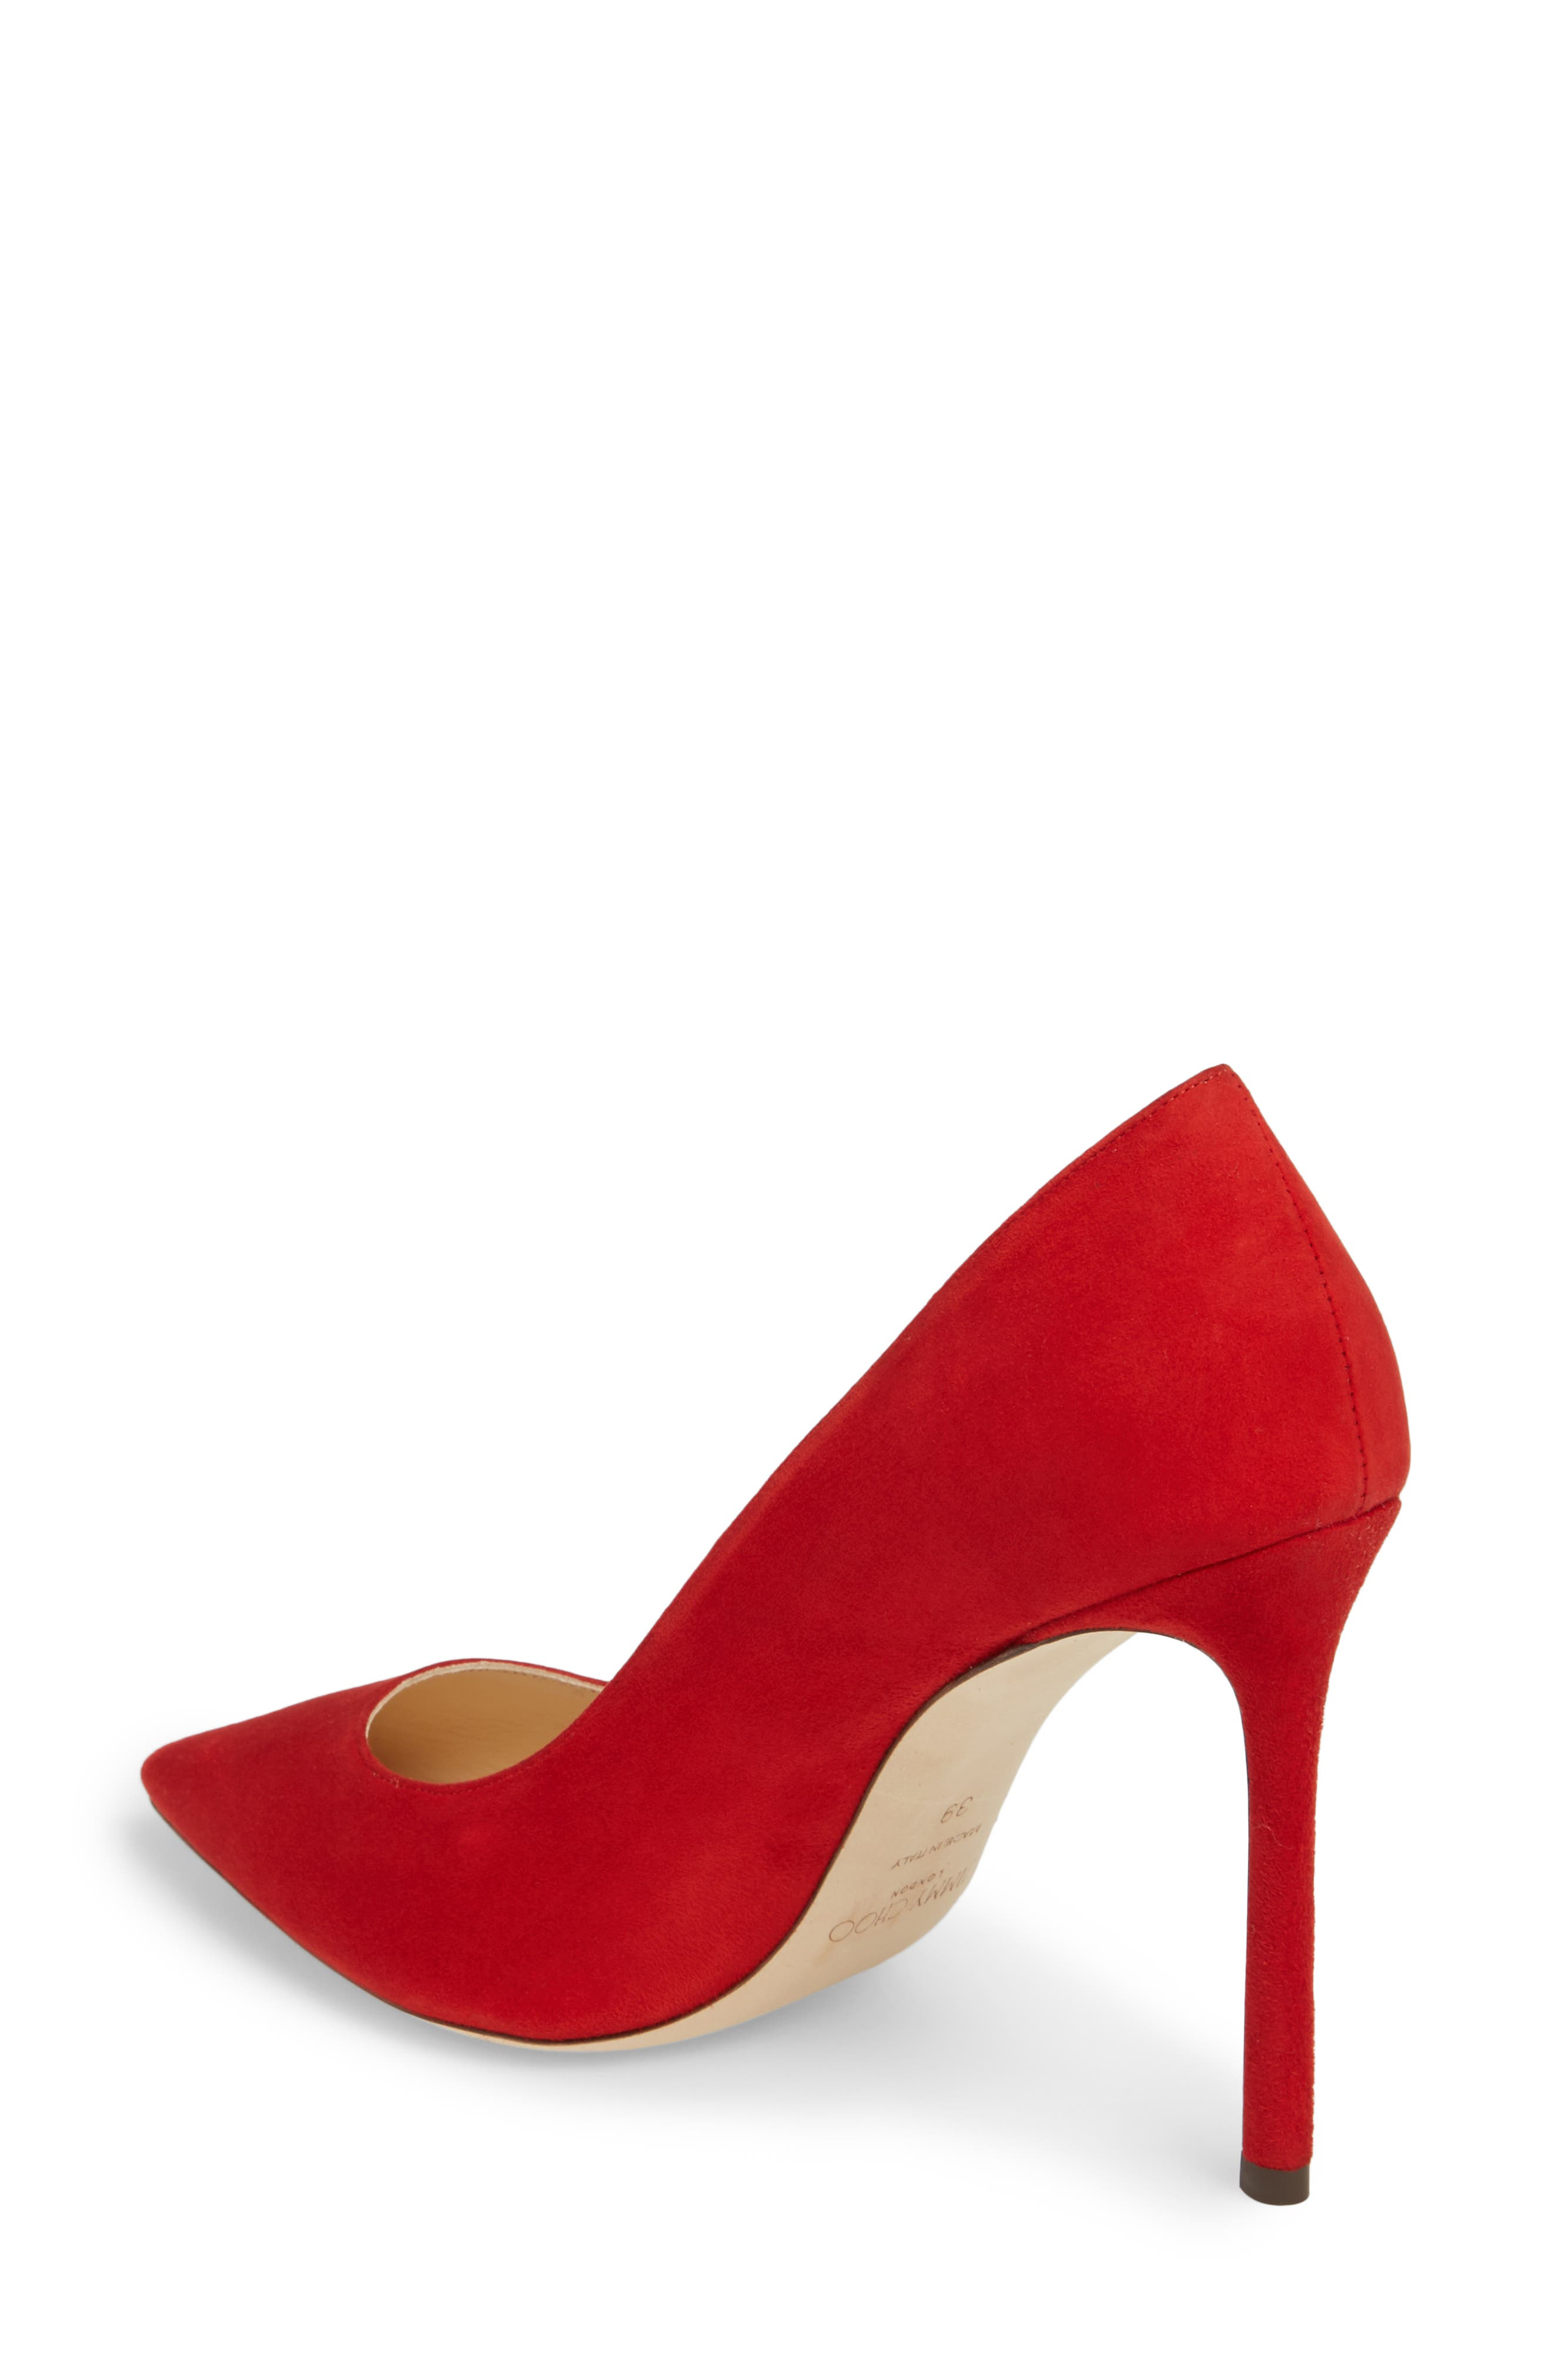 'Romy' Pointy Toe Pump,                             Alternate thumbnail 2, color,                             Red Suede